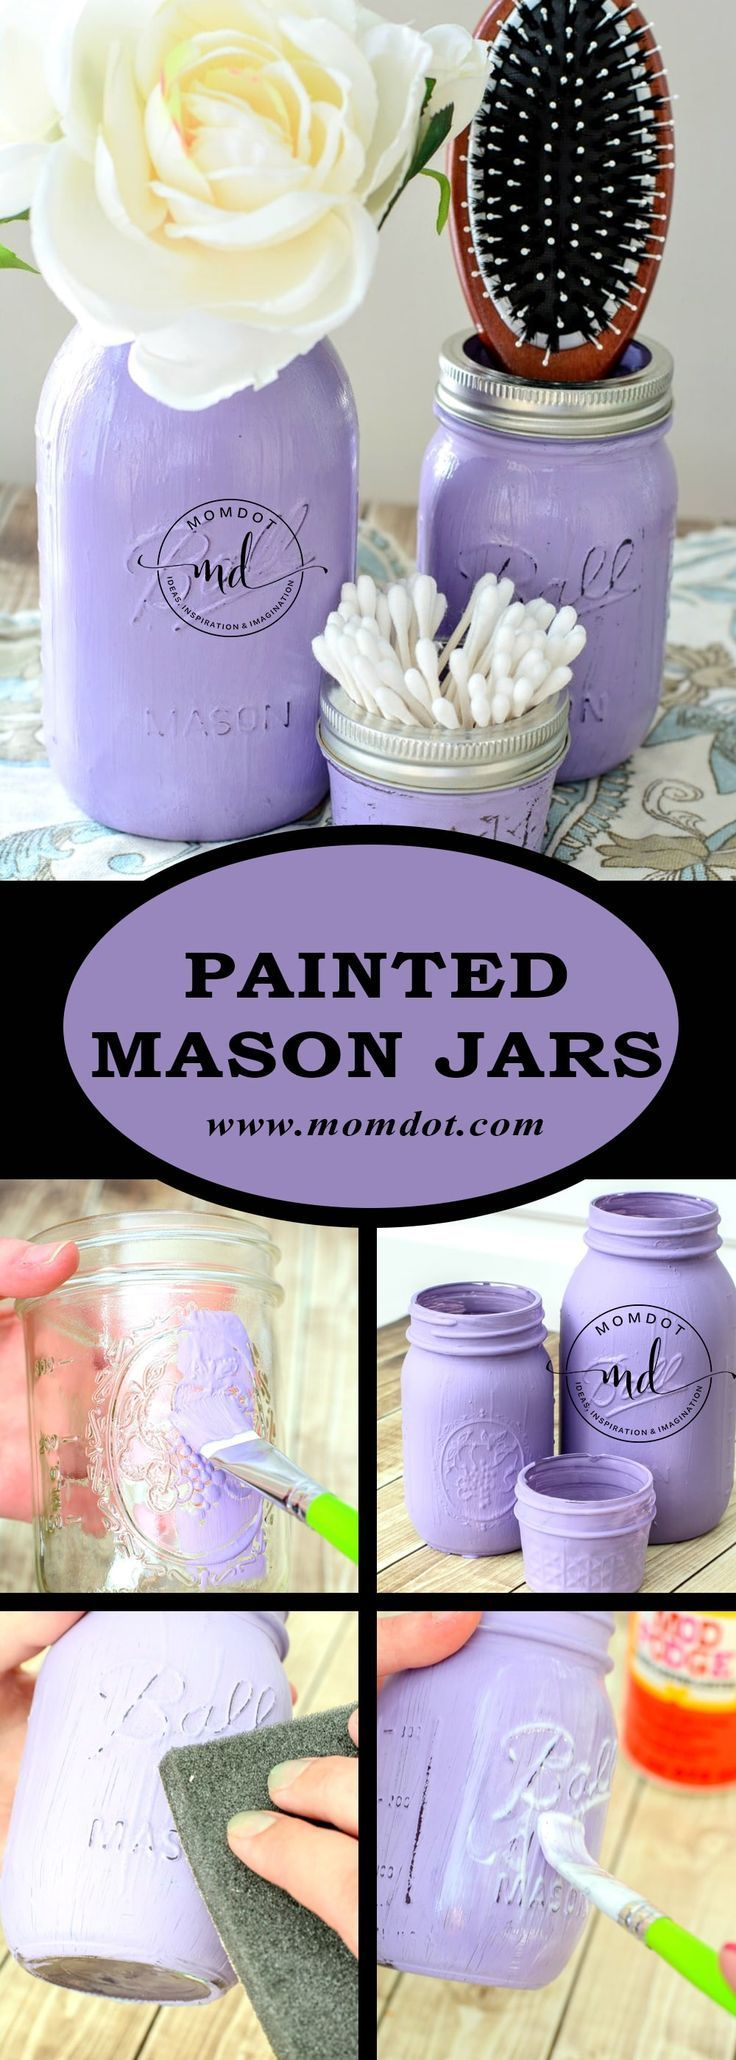 DIY Painted Mason Jars Tutorial - -   22 mason jar decorados